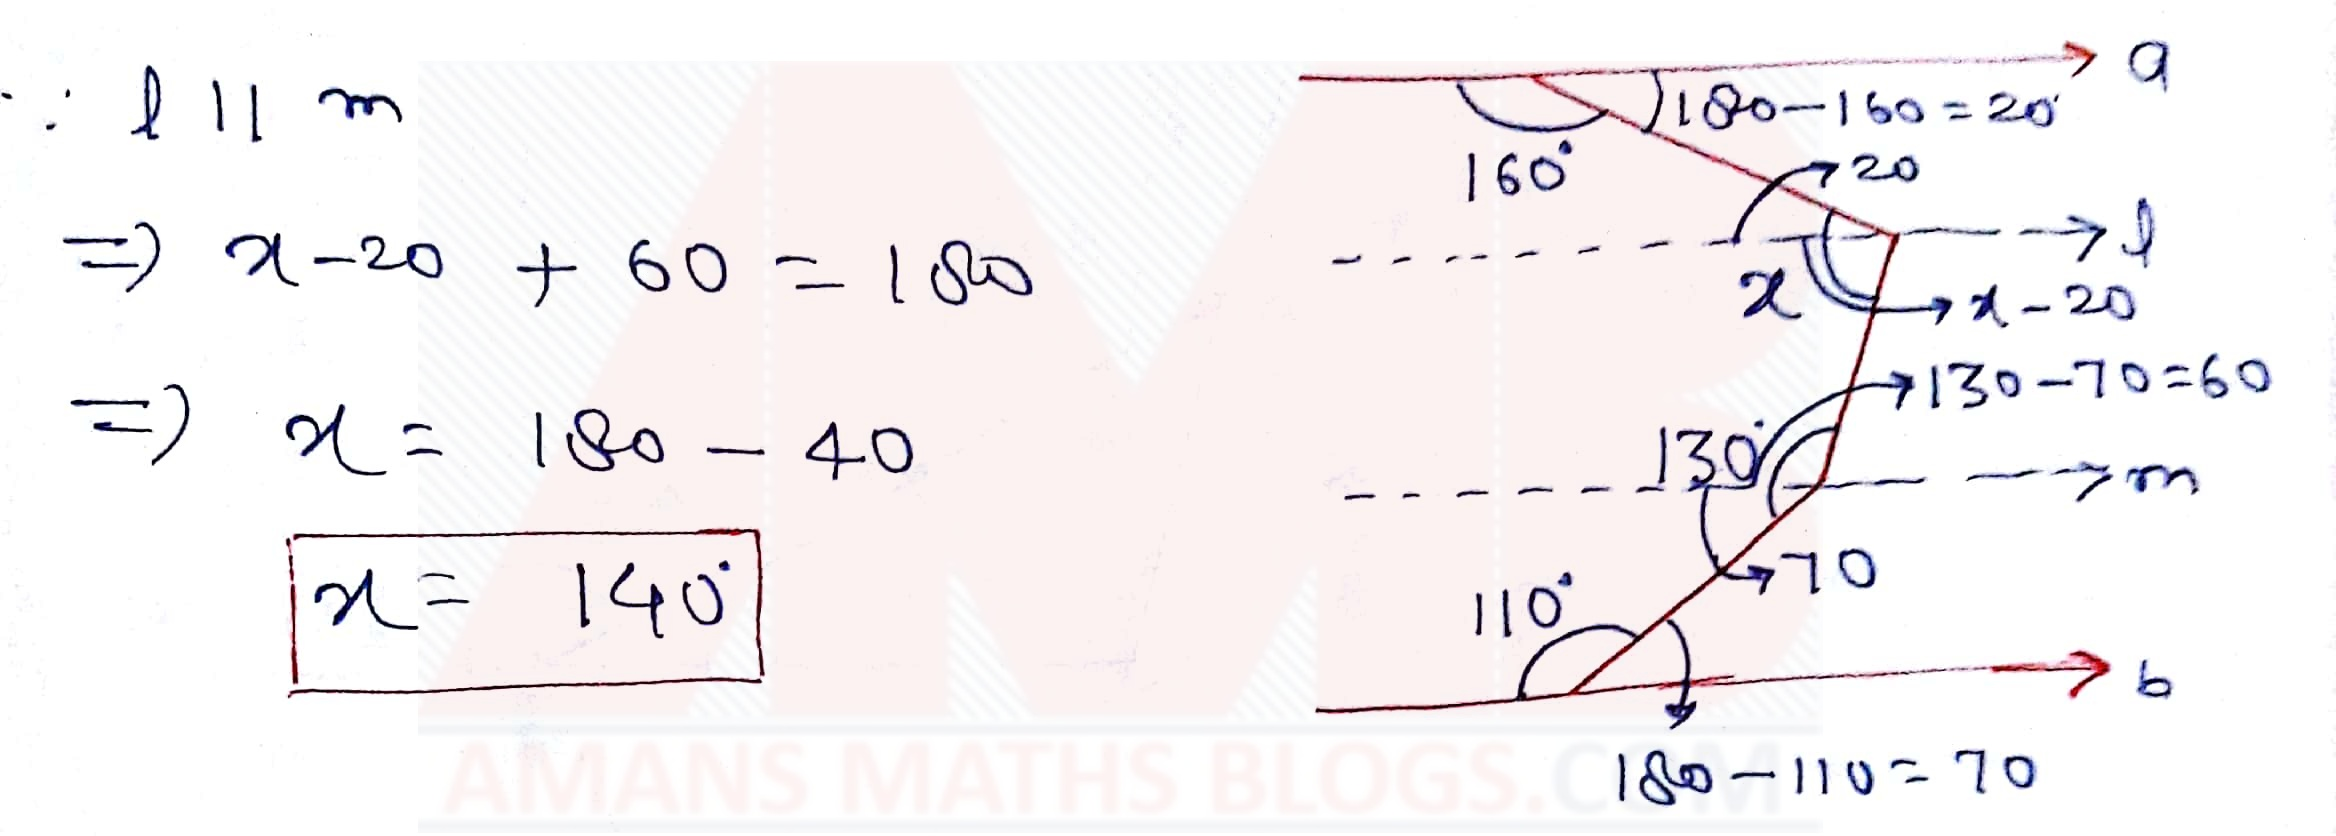 SSC CGL Geometry Lines And Angles Set 1   AMANS MATHS BLOGS